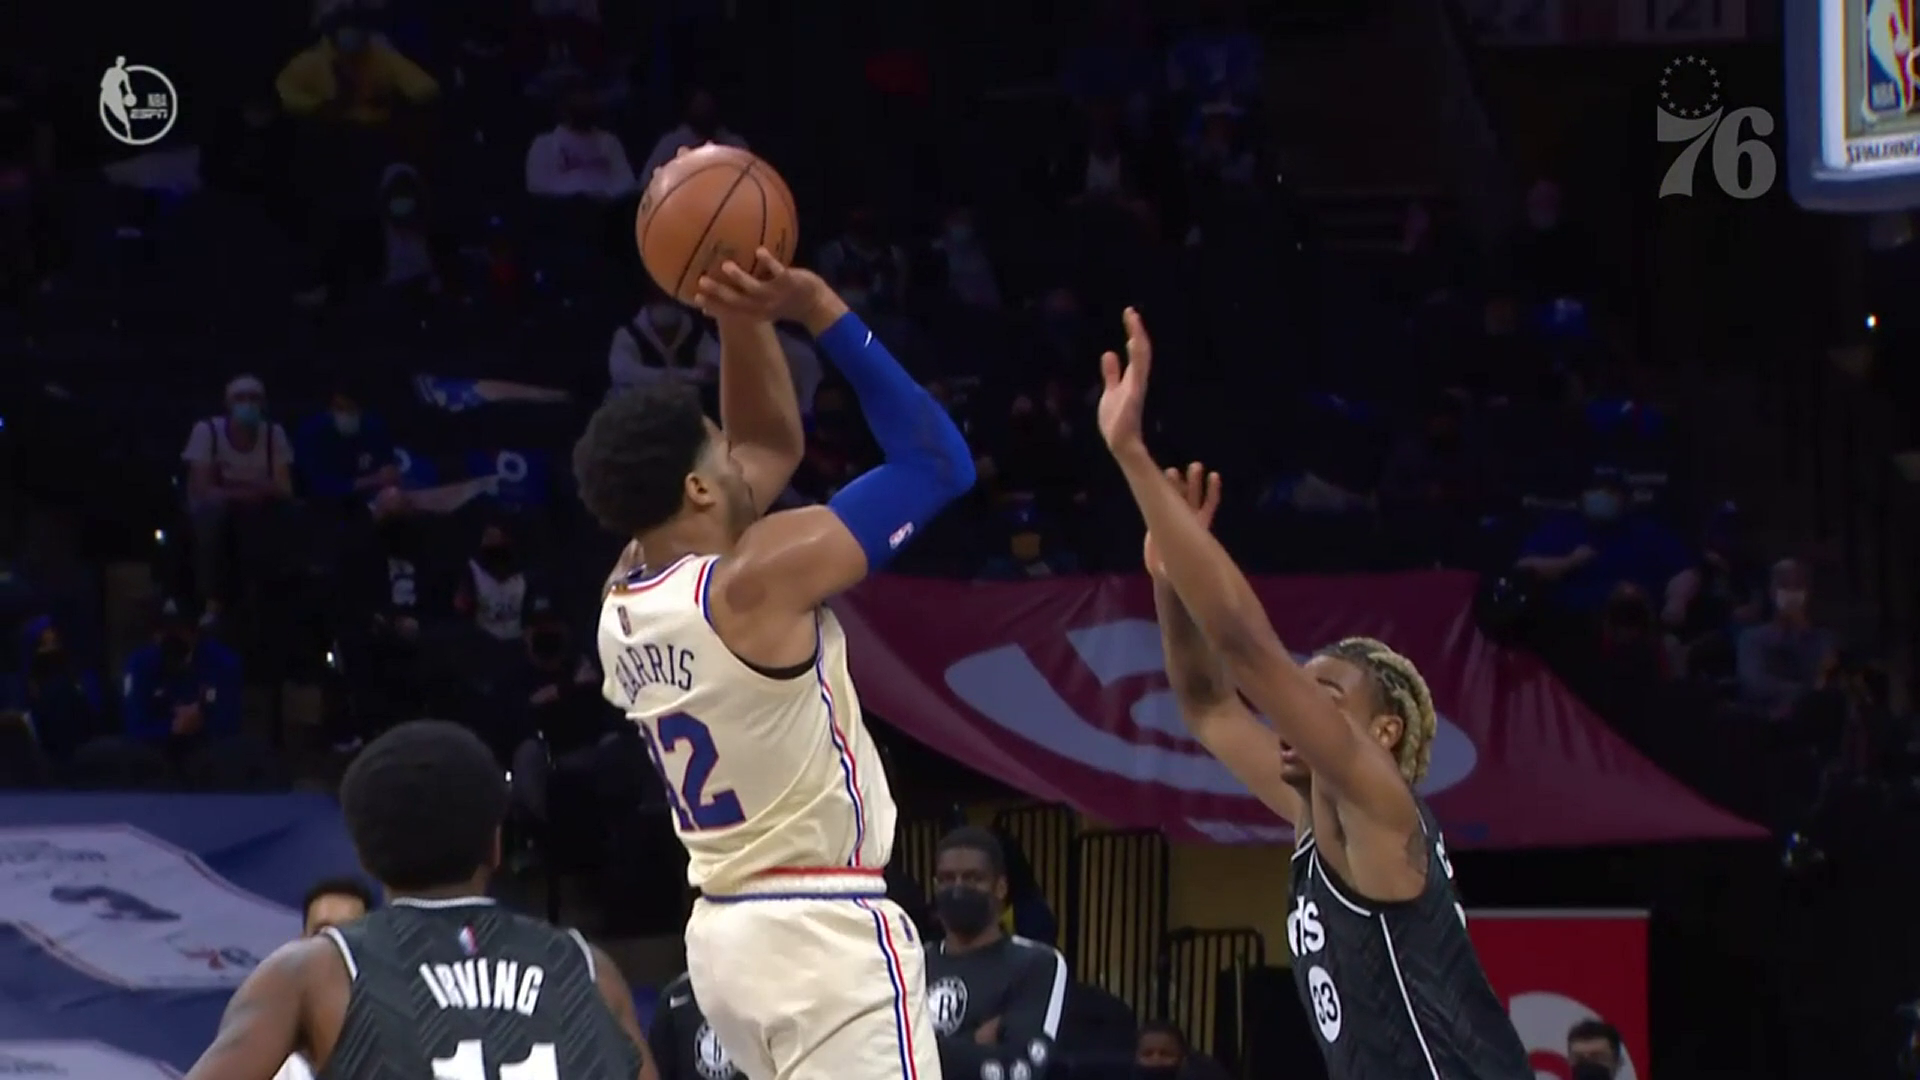 Tobias Harris | Highlights vs Brooklyn Nets (04.14.21)